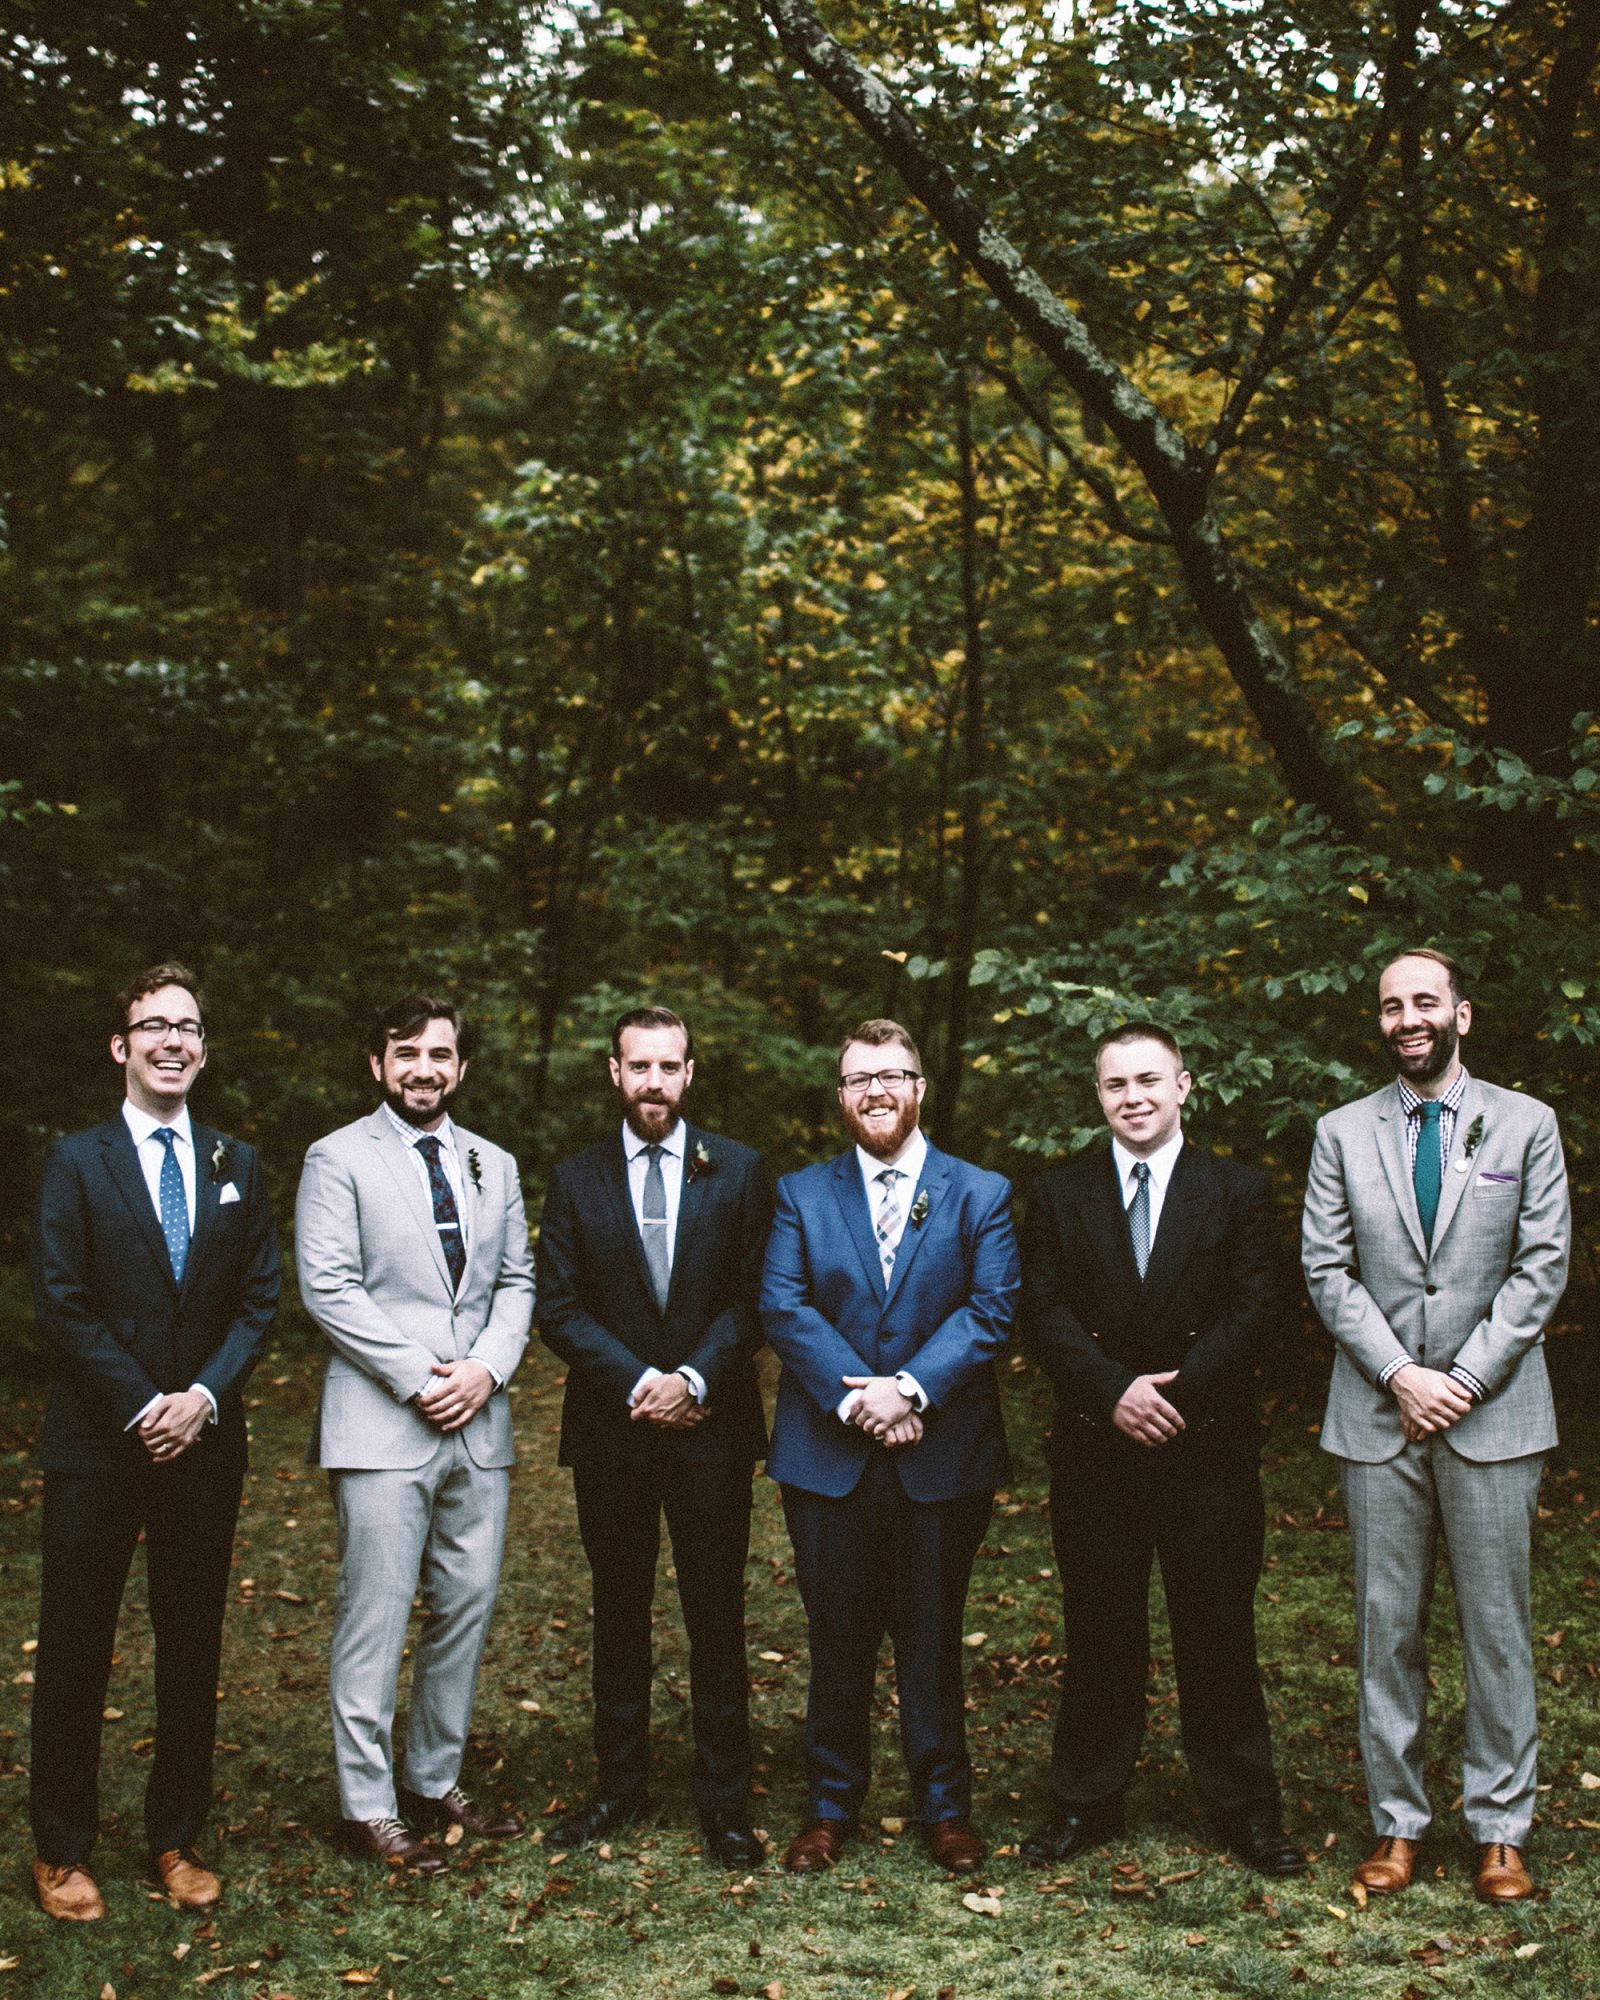 The Dapper Dudes